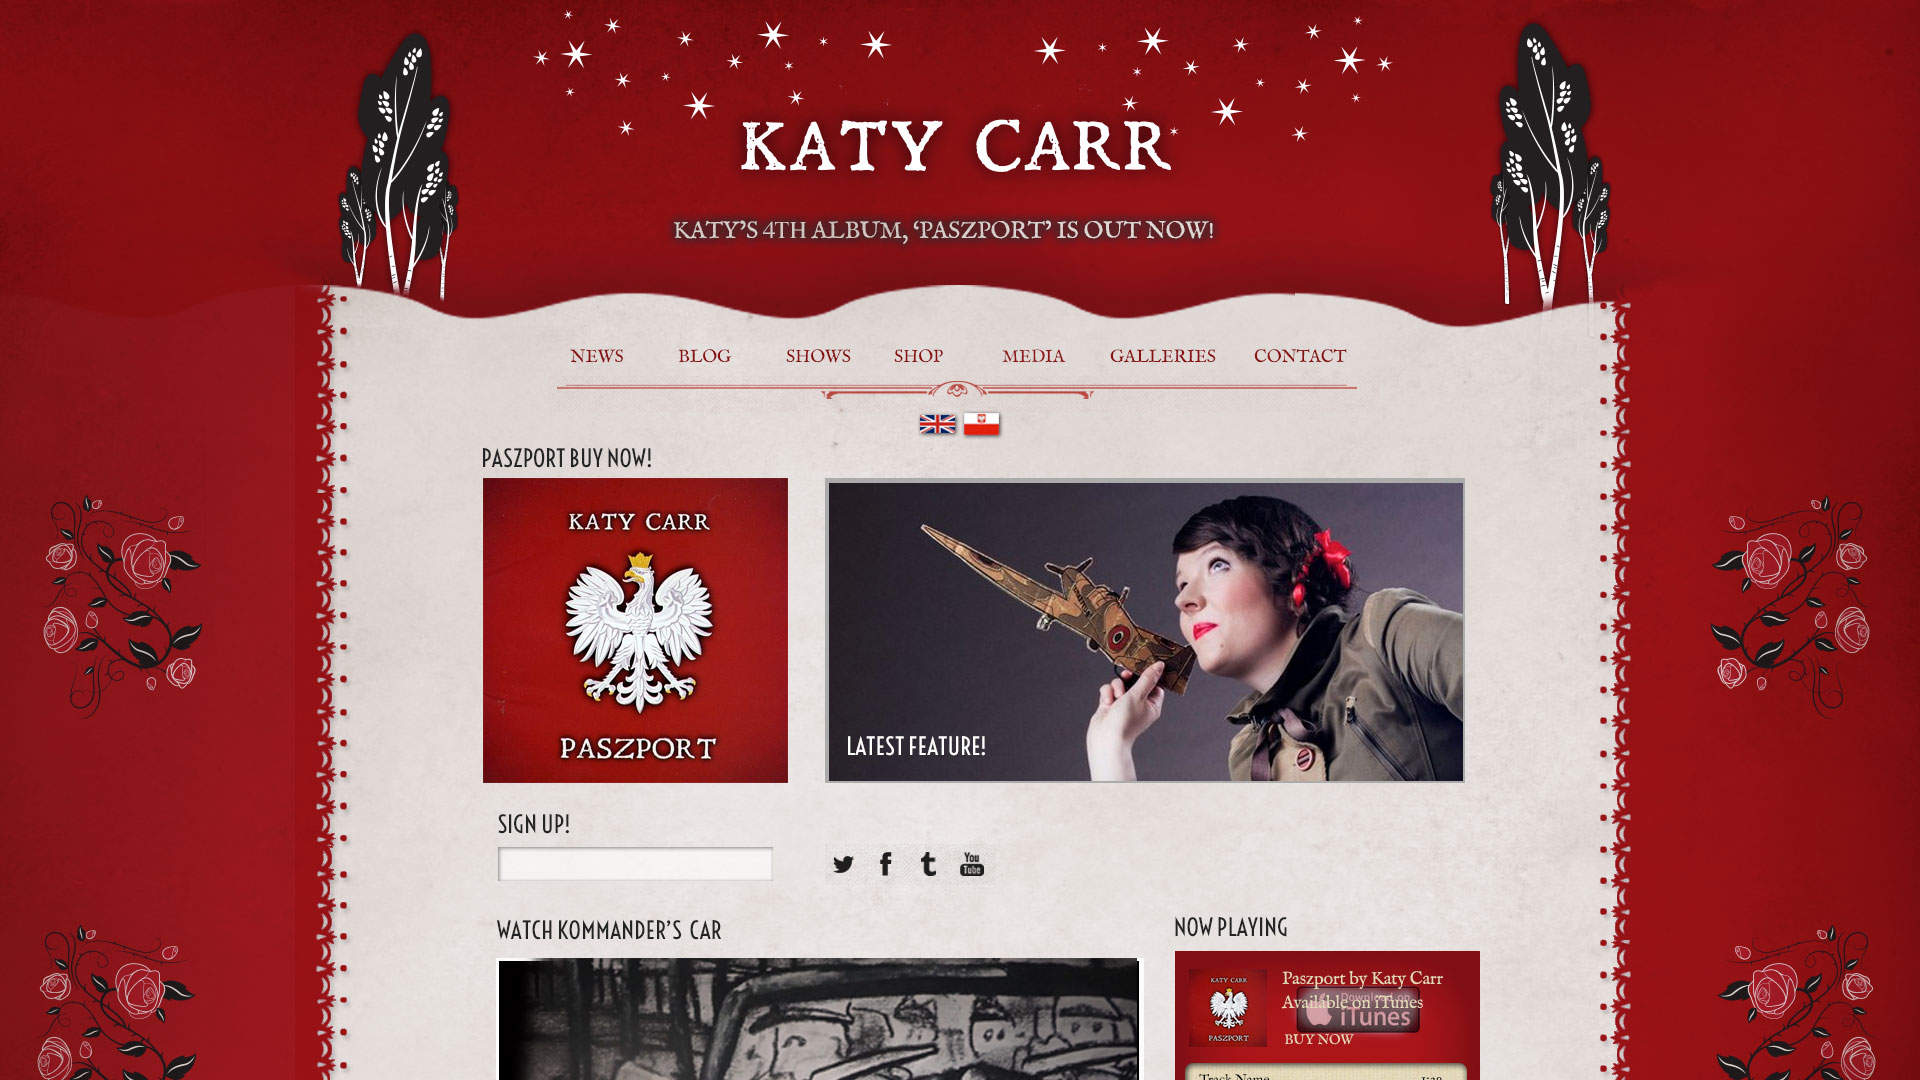 Katy Carr home page